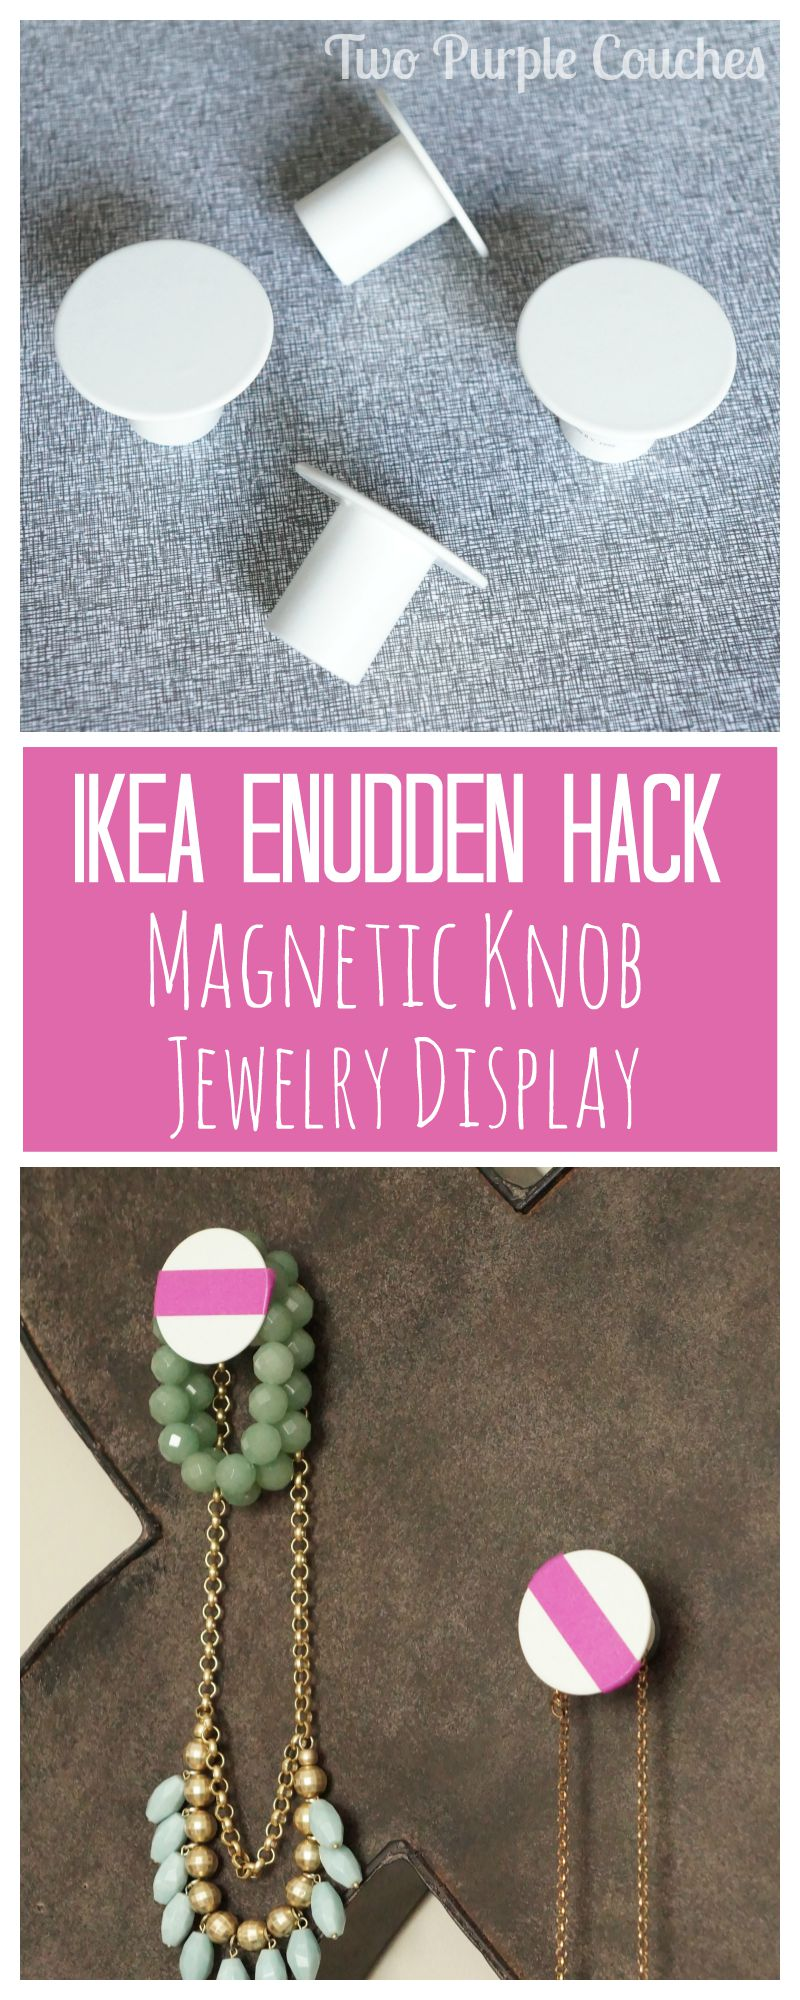 IKEA Enudden Magnetic Knob Jewelry Display via www.twopurplecouches.com